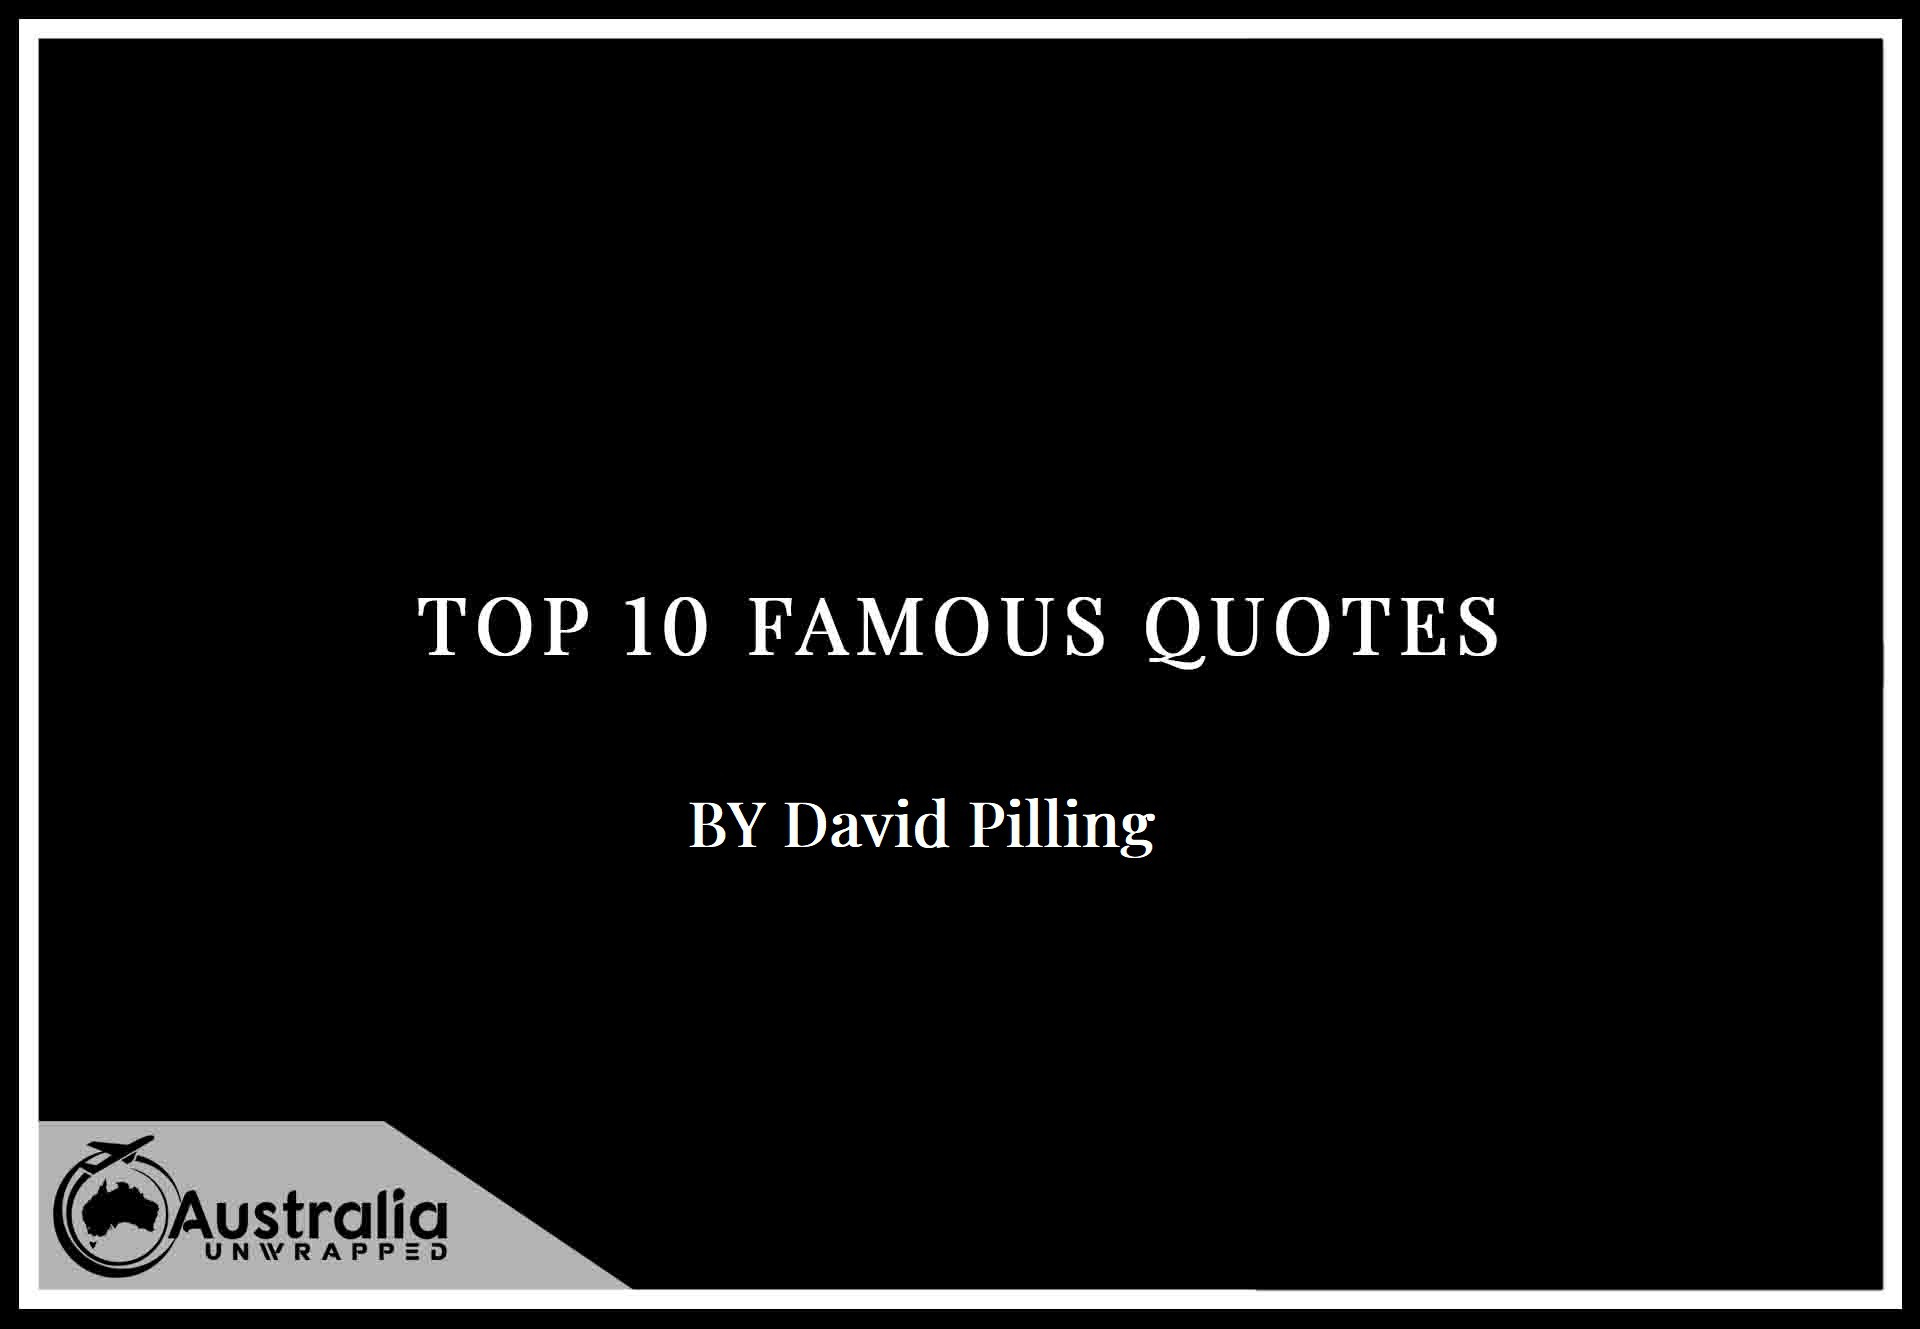 Top 10 Famous Quotes by Author David Pilling